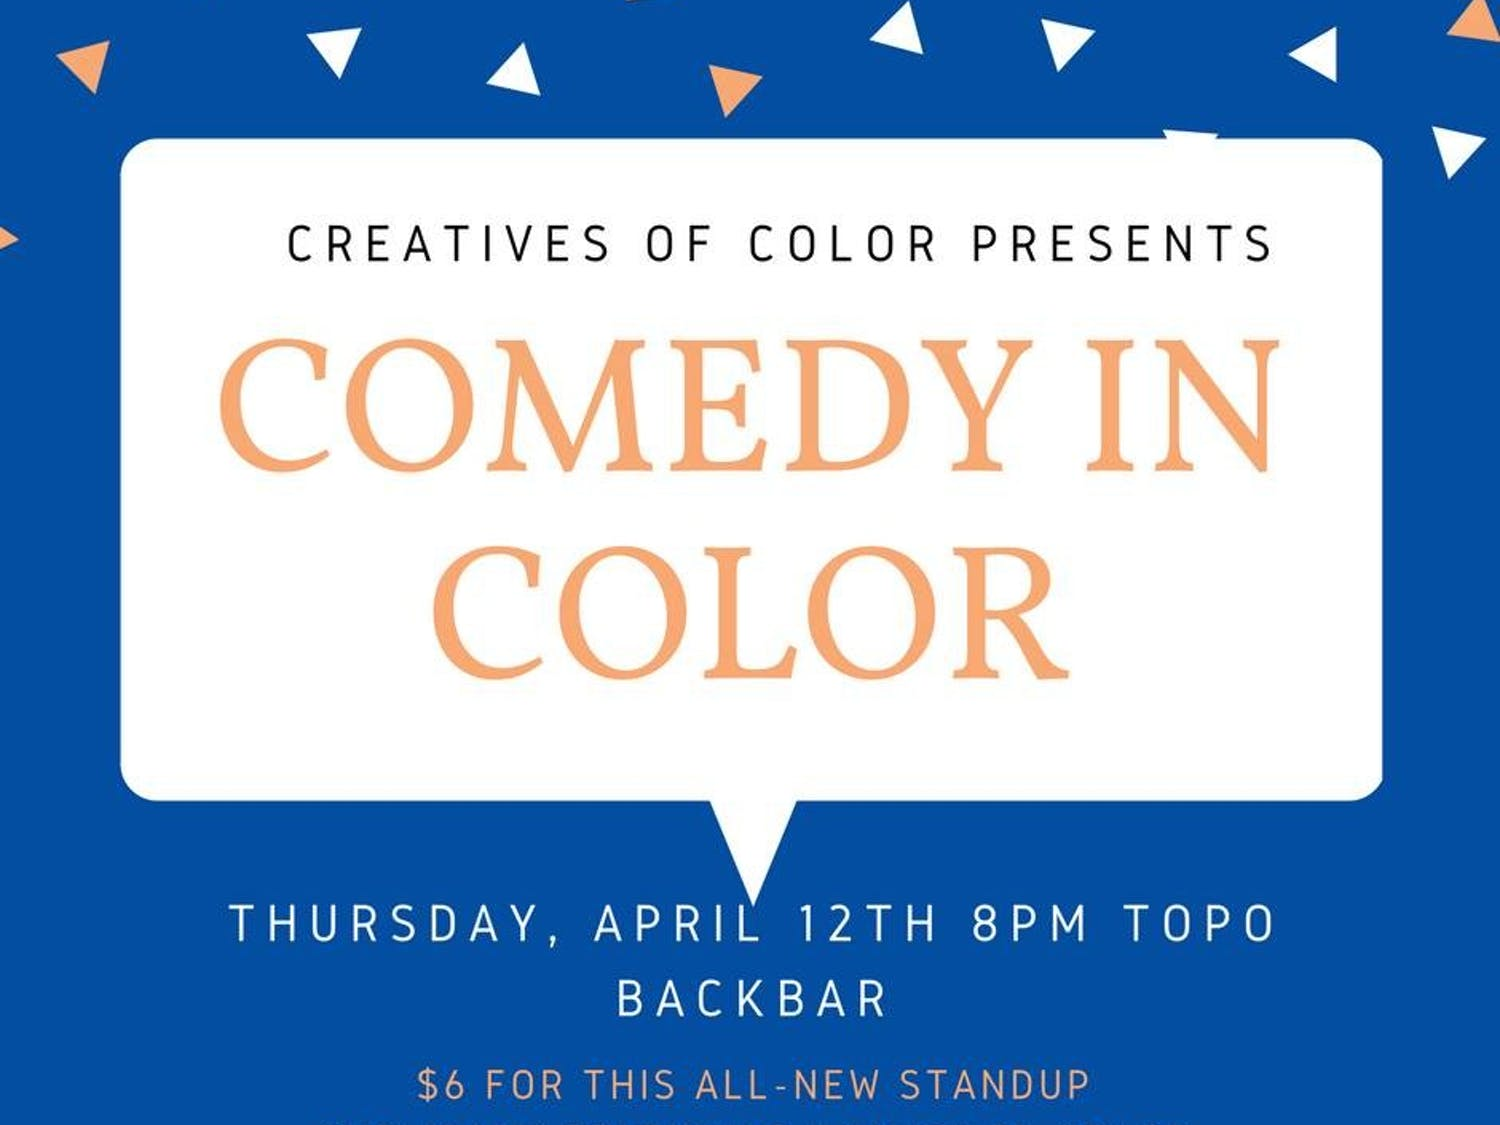 Creatives of Color is hosting Comedy in Color at the TOPO Back Bar. Courtesy of Noni Shemenski.